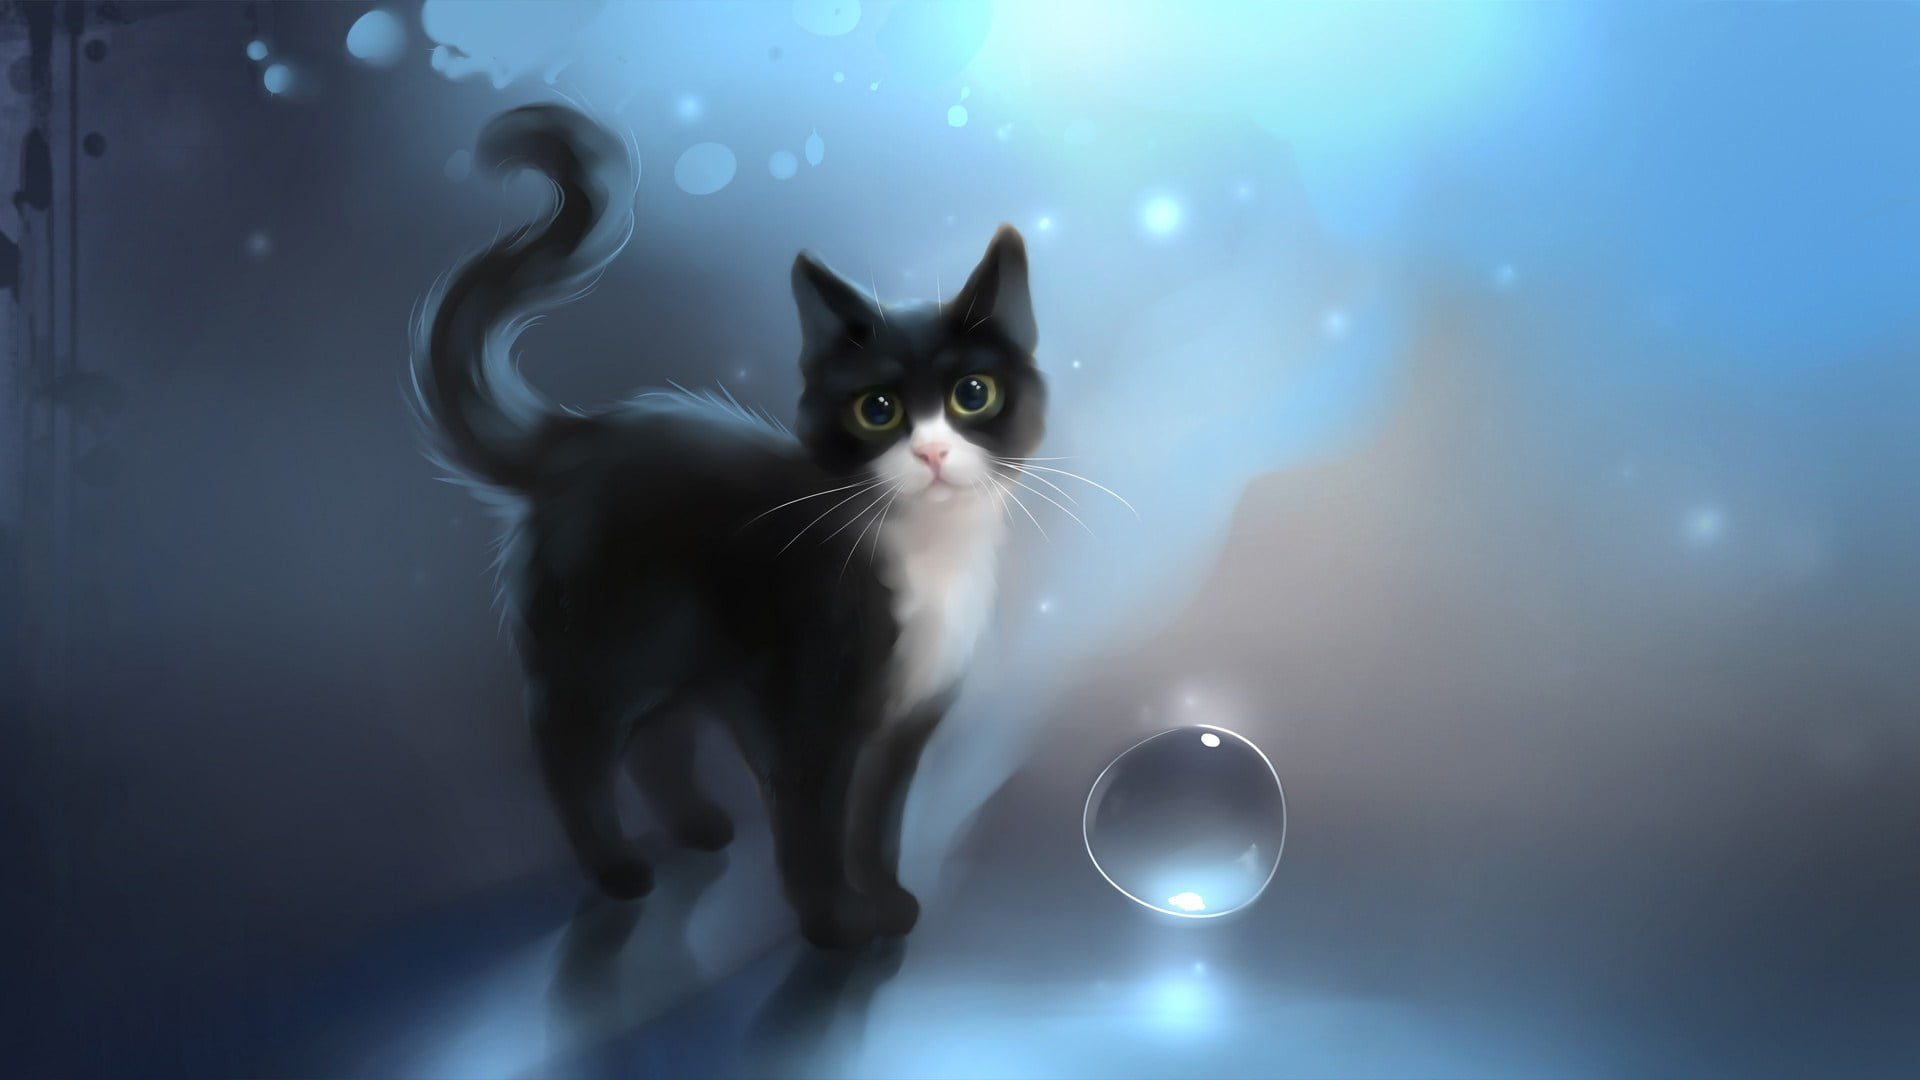 Tuxedo kitten illustration HD wallpaper Wallpaper Flare 1920x1080